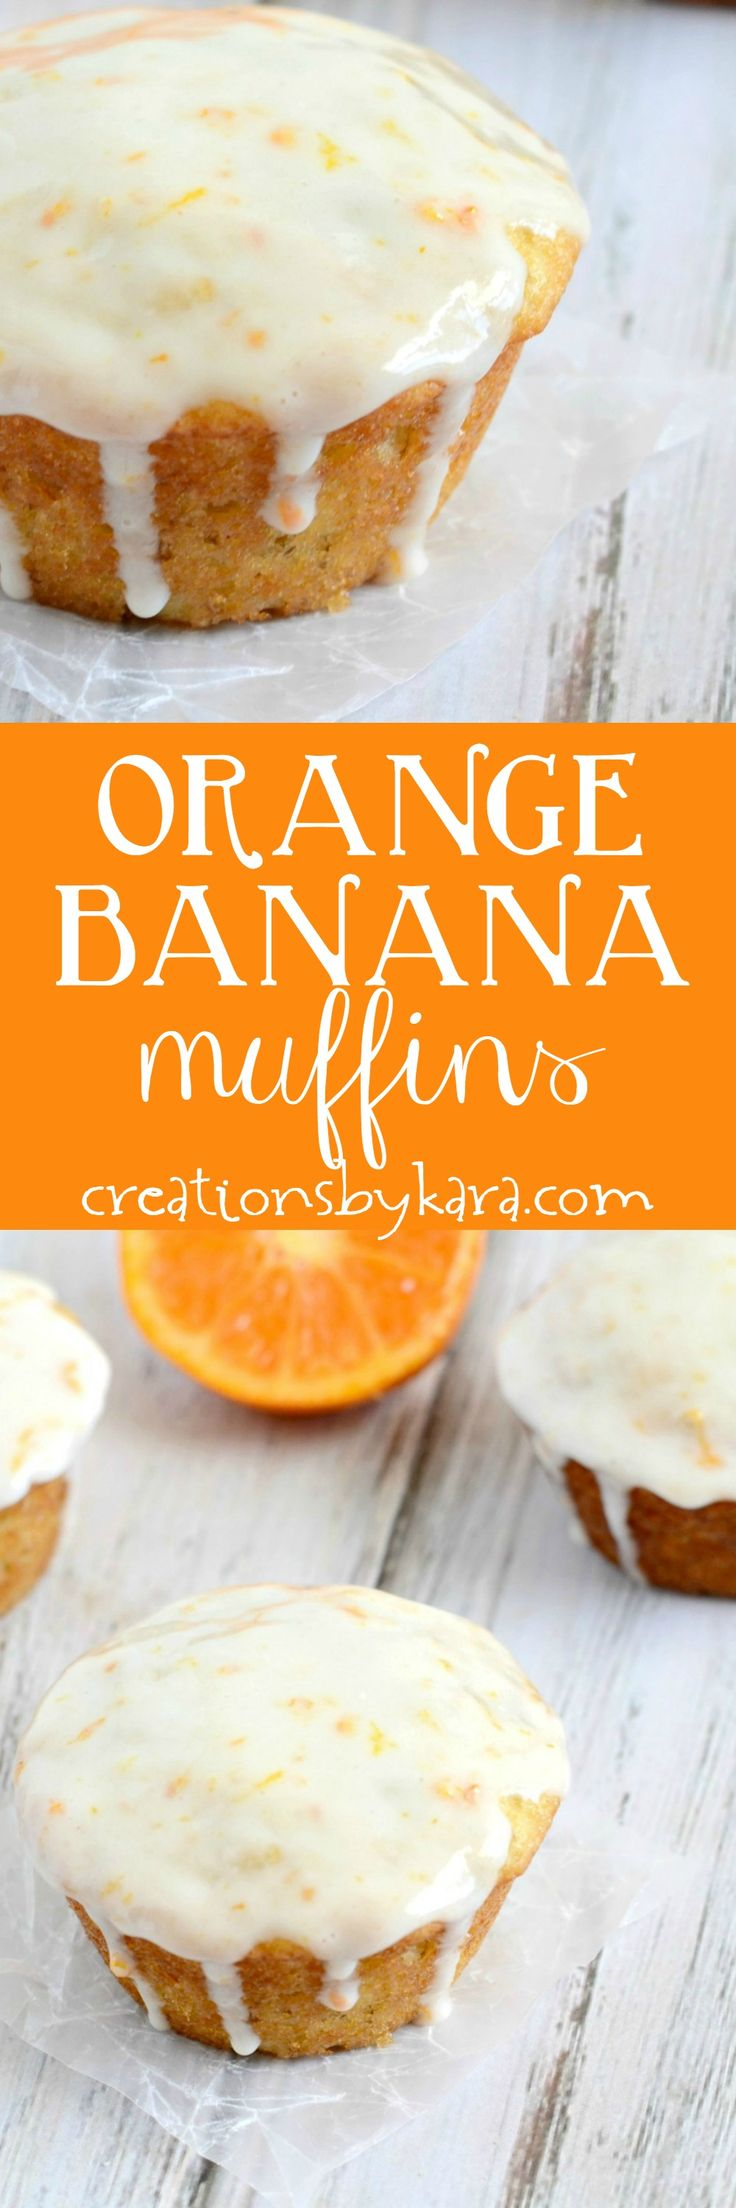 Orange Banana Muffins with Sour Cream Glaze - these banana muffins are far from boring! You will love this muffin recipe.  via creationsbykara.com